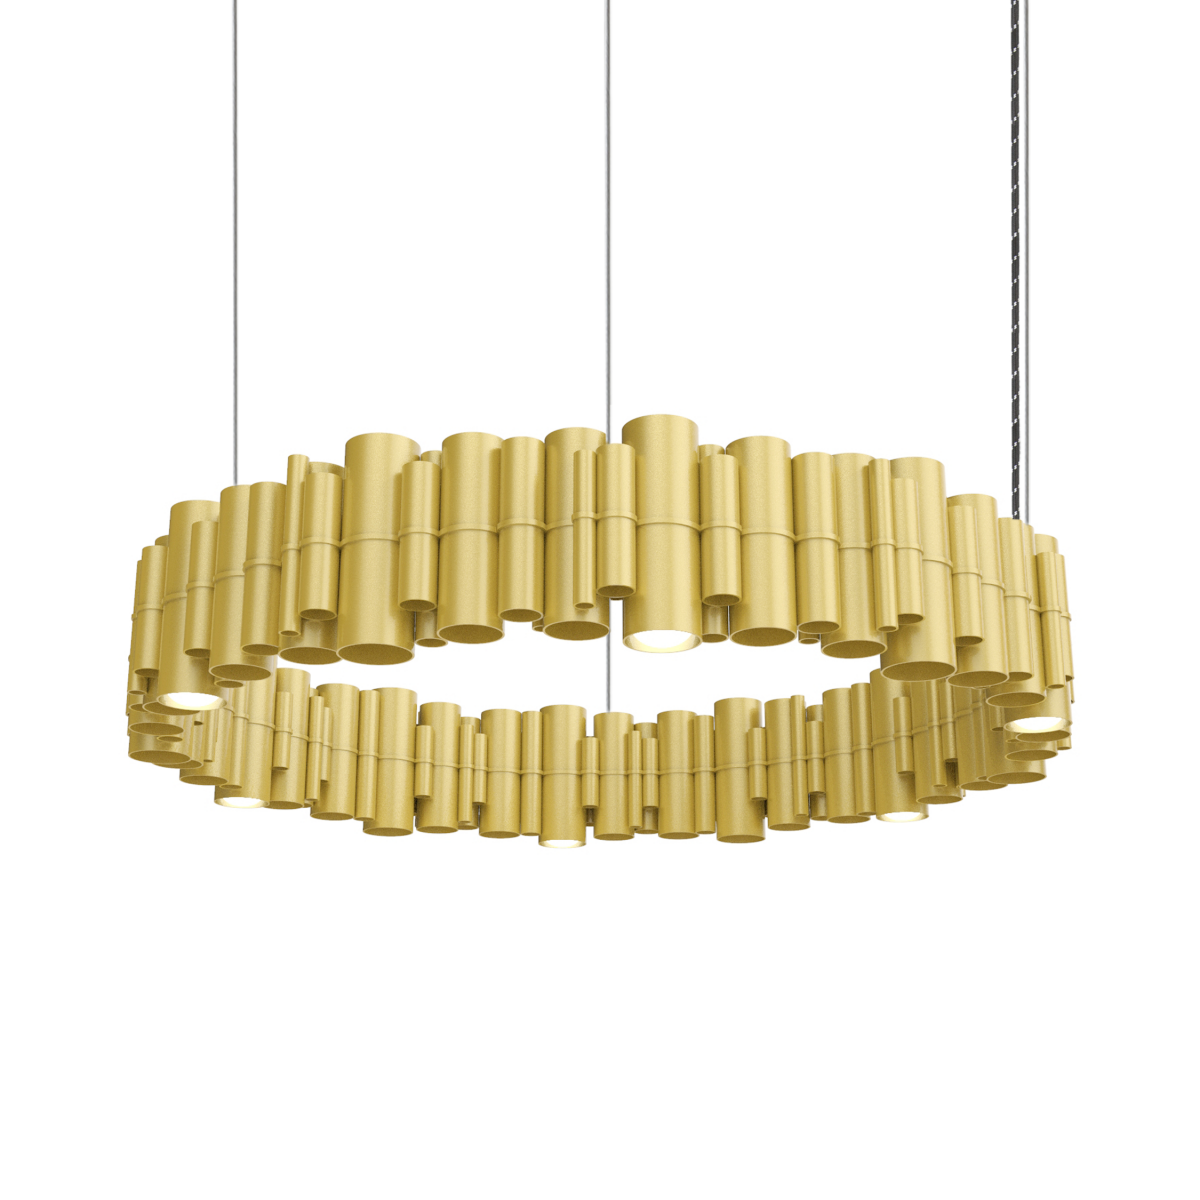 JSPR Cityscapes Suburban ON Gold Goud Luxe Lamp